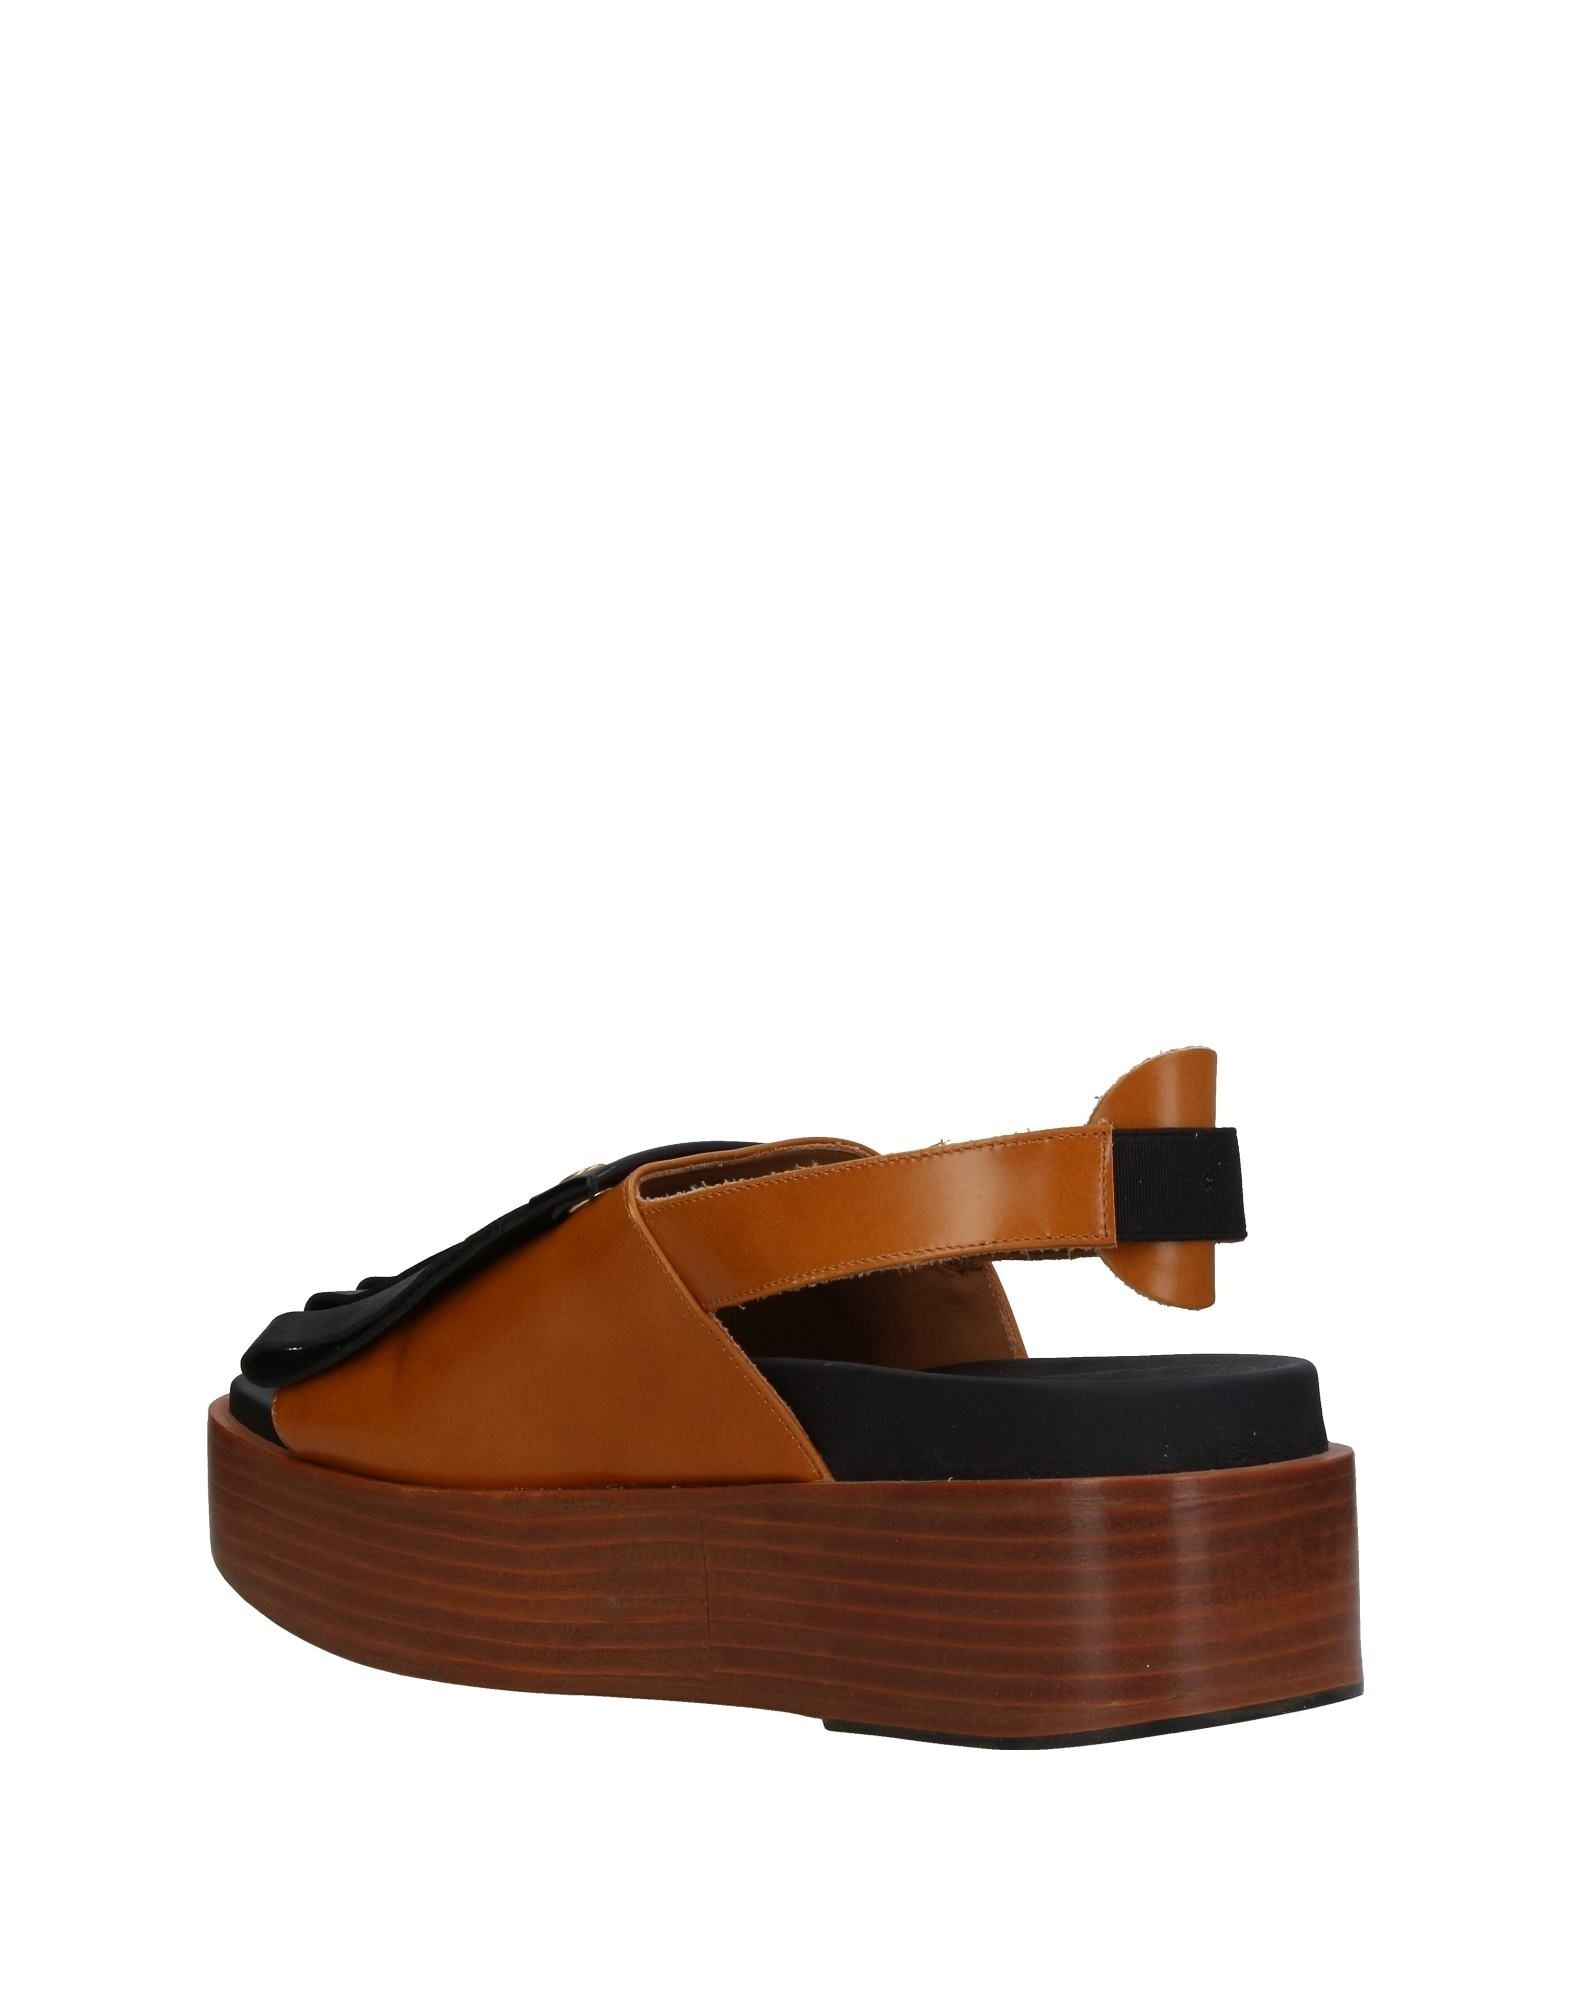 Sandales Lf Shoes Femme - Sandales Lf Shoes sur